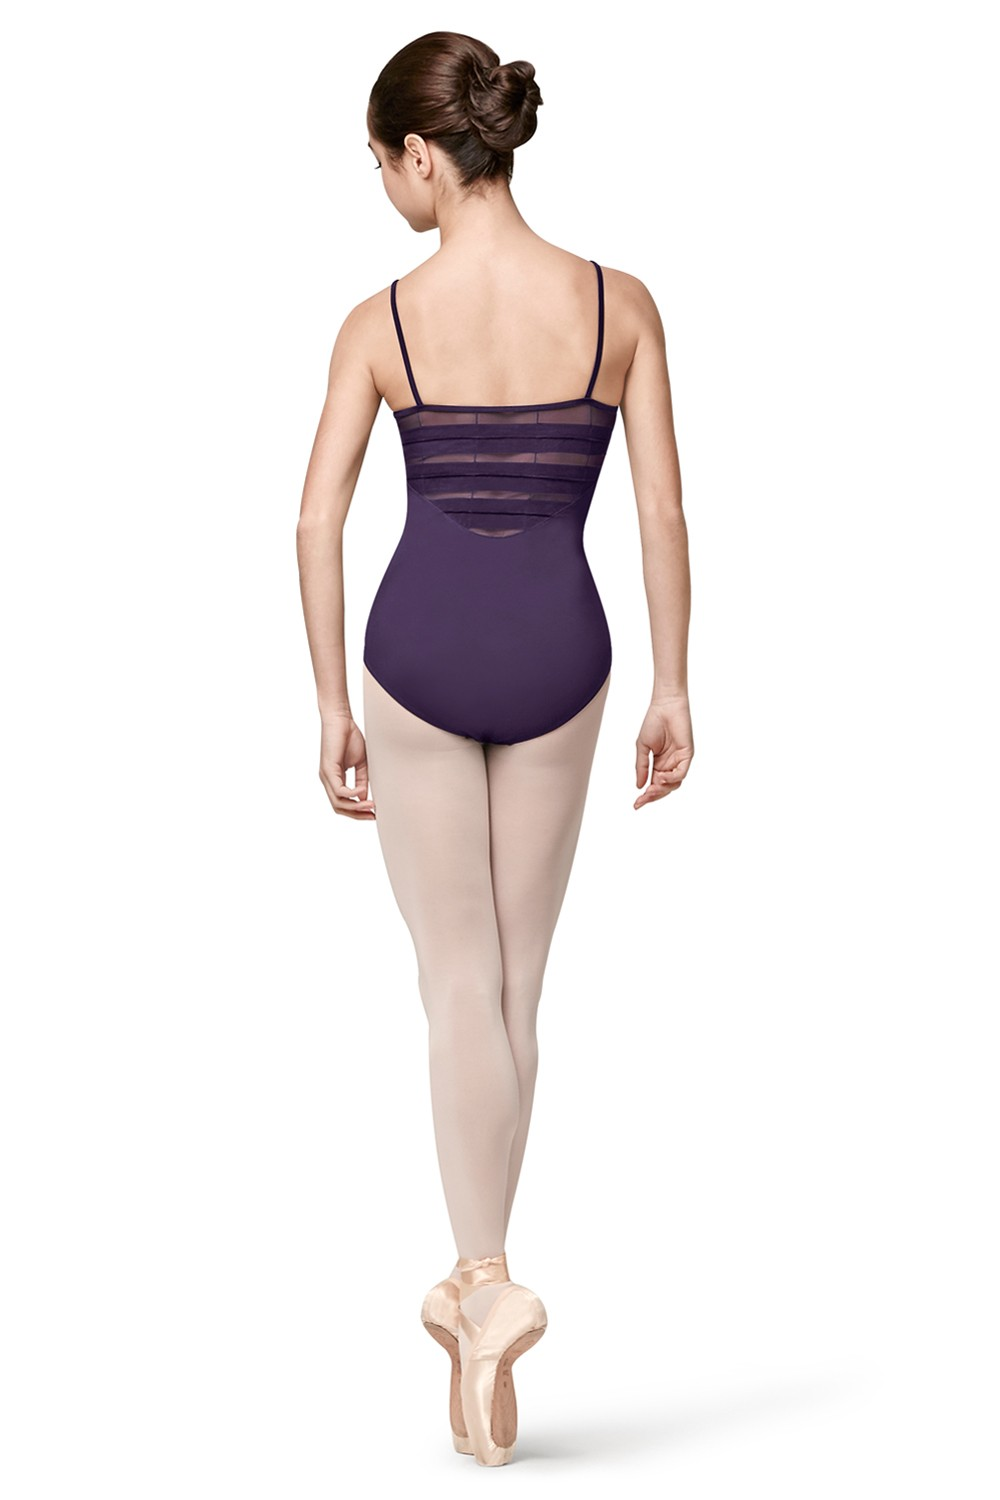 Macona Women's Dance Leotards